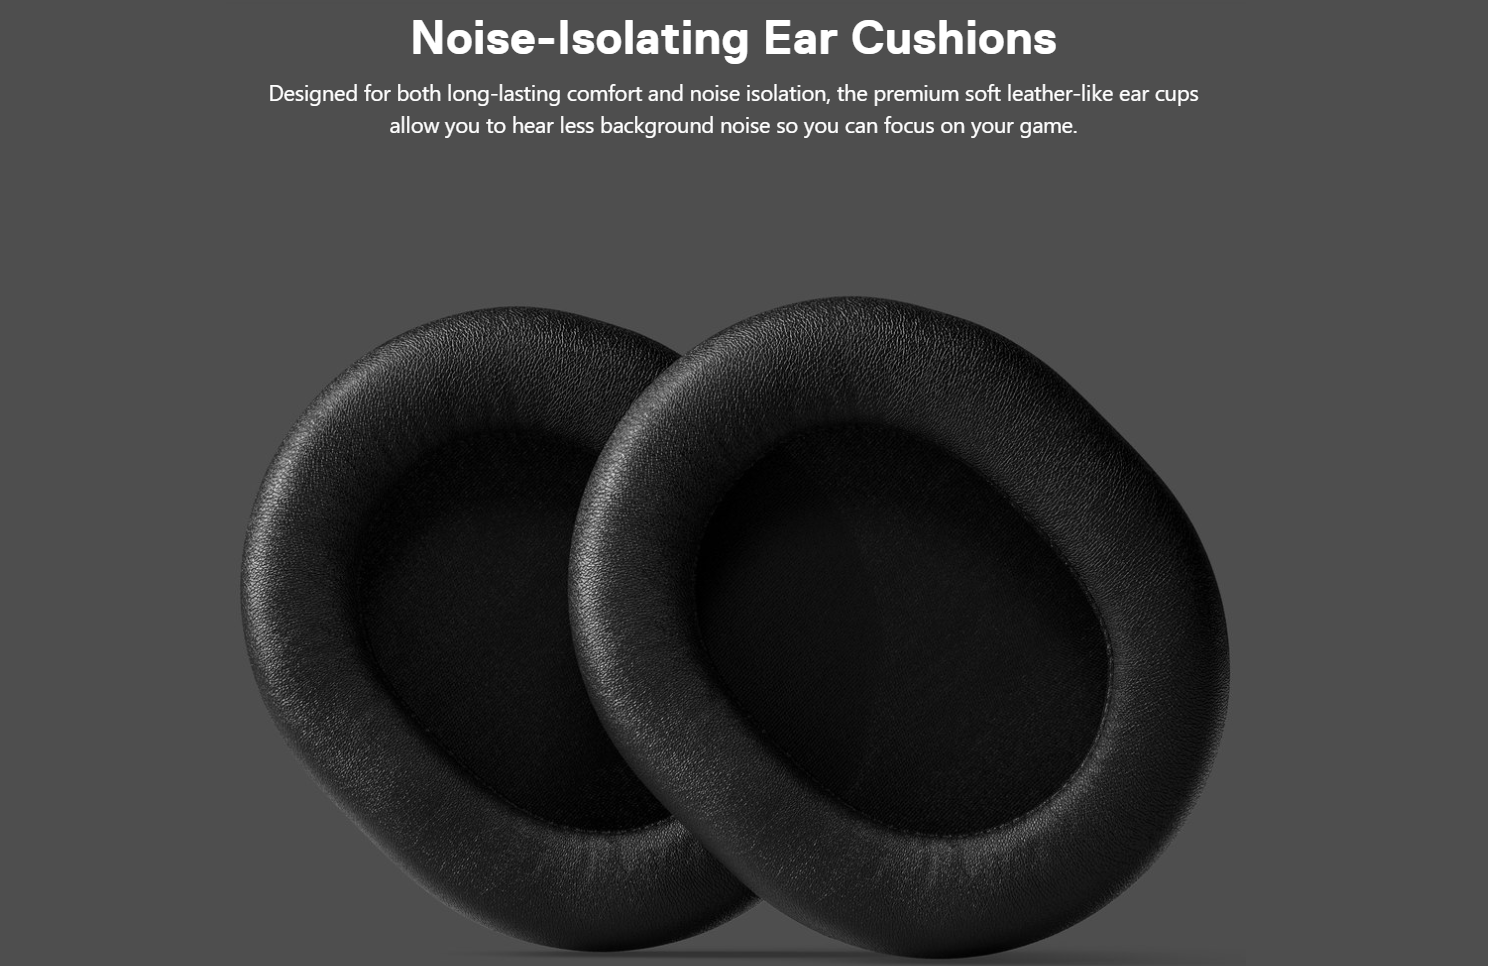 SteelSeries Arctis Prime - Noise-Isolating Ear Cushions